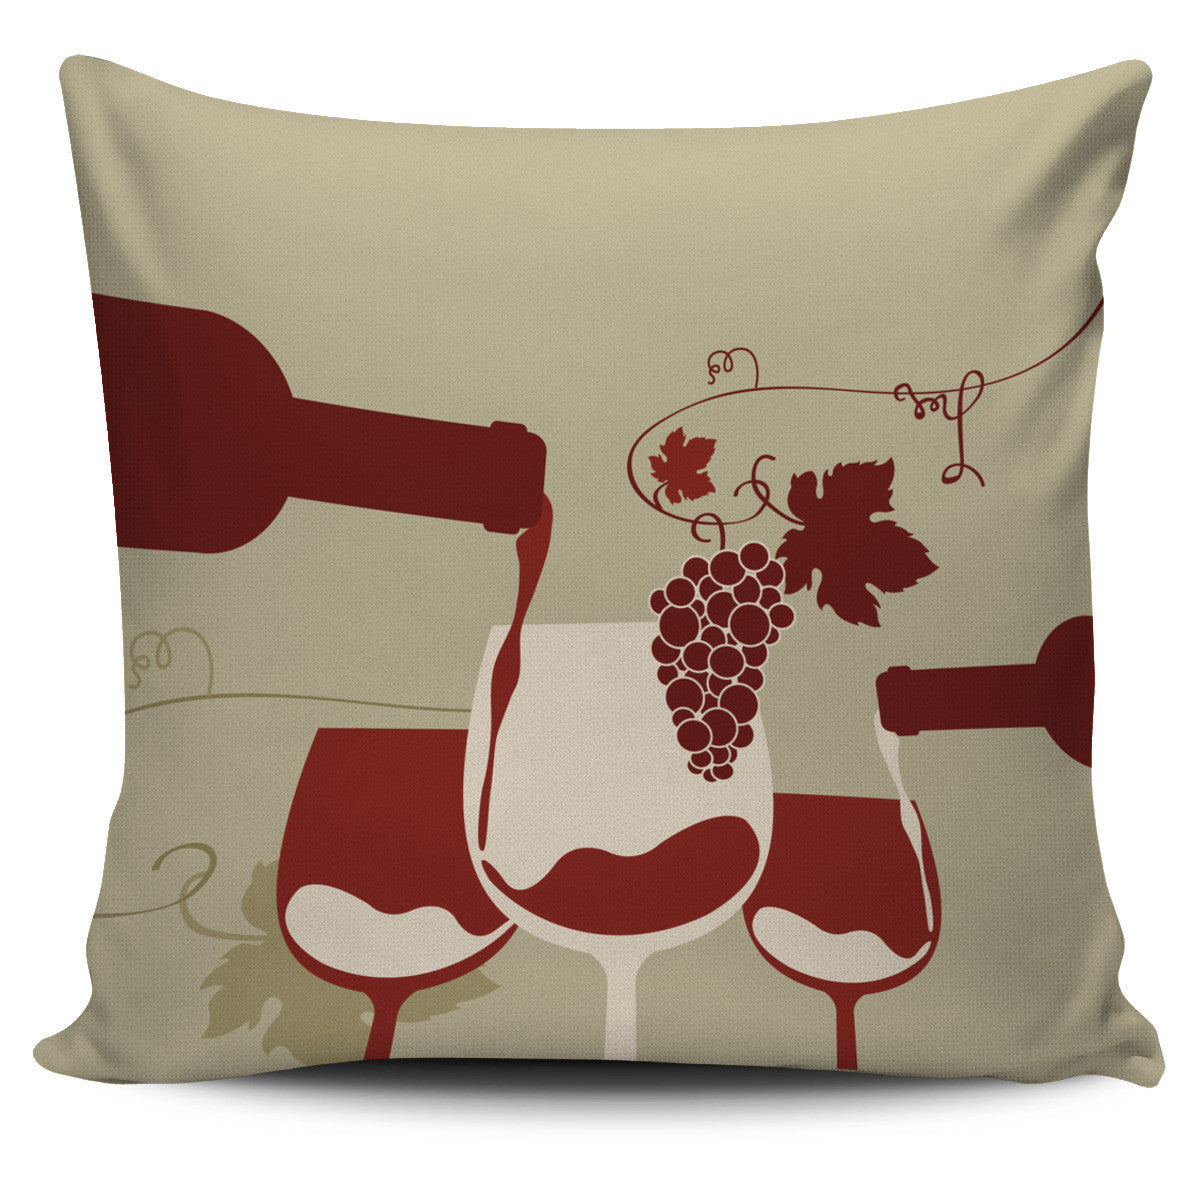 Wine Pillow Covers II Offer